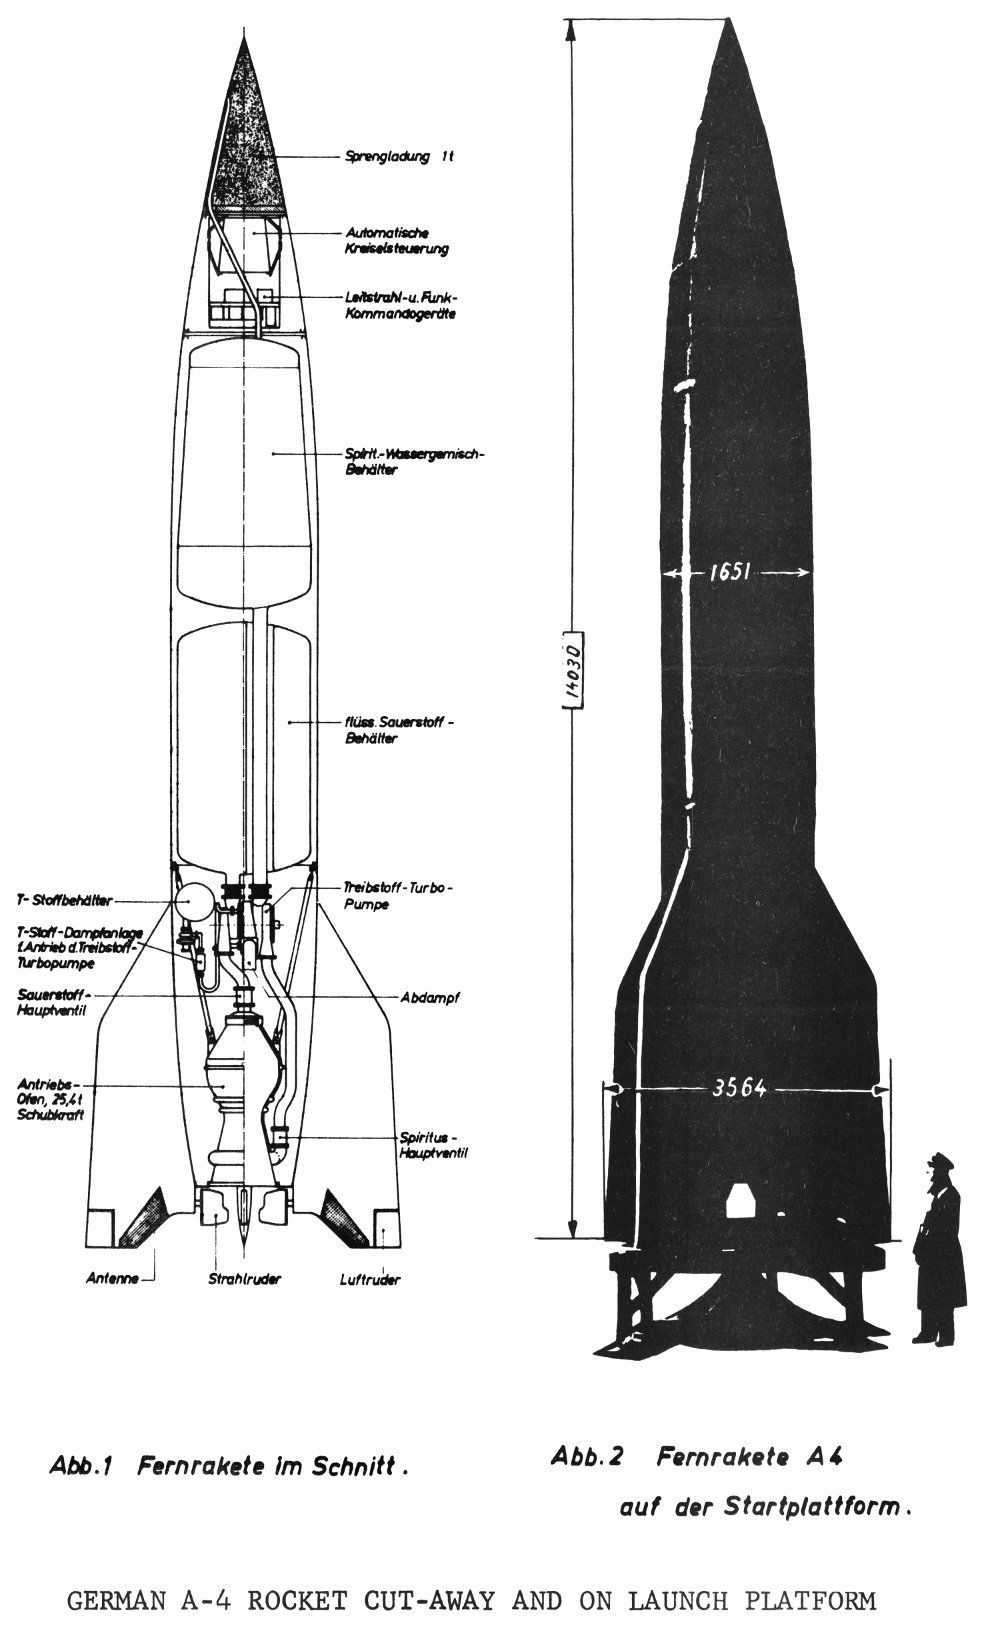 V-2 missile A-4 rocket cut-away engine compartment